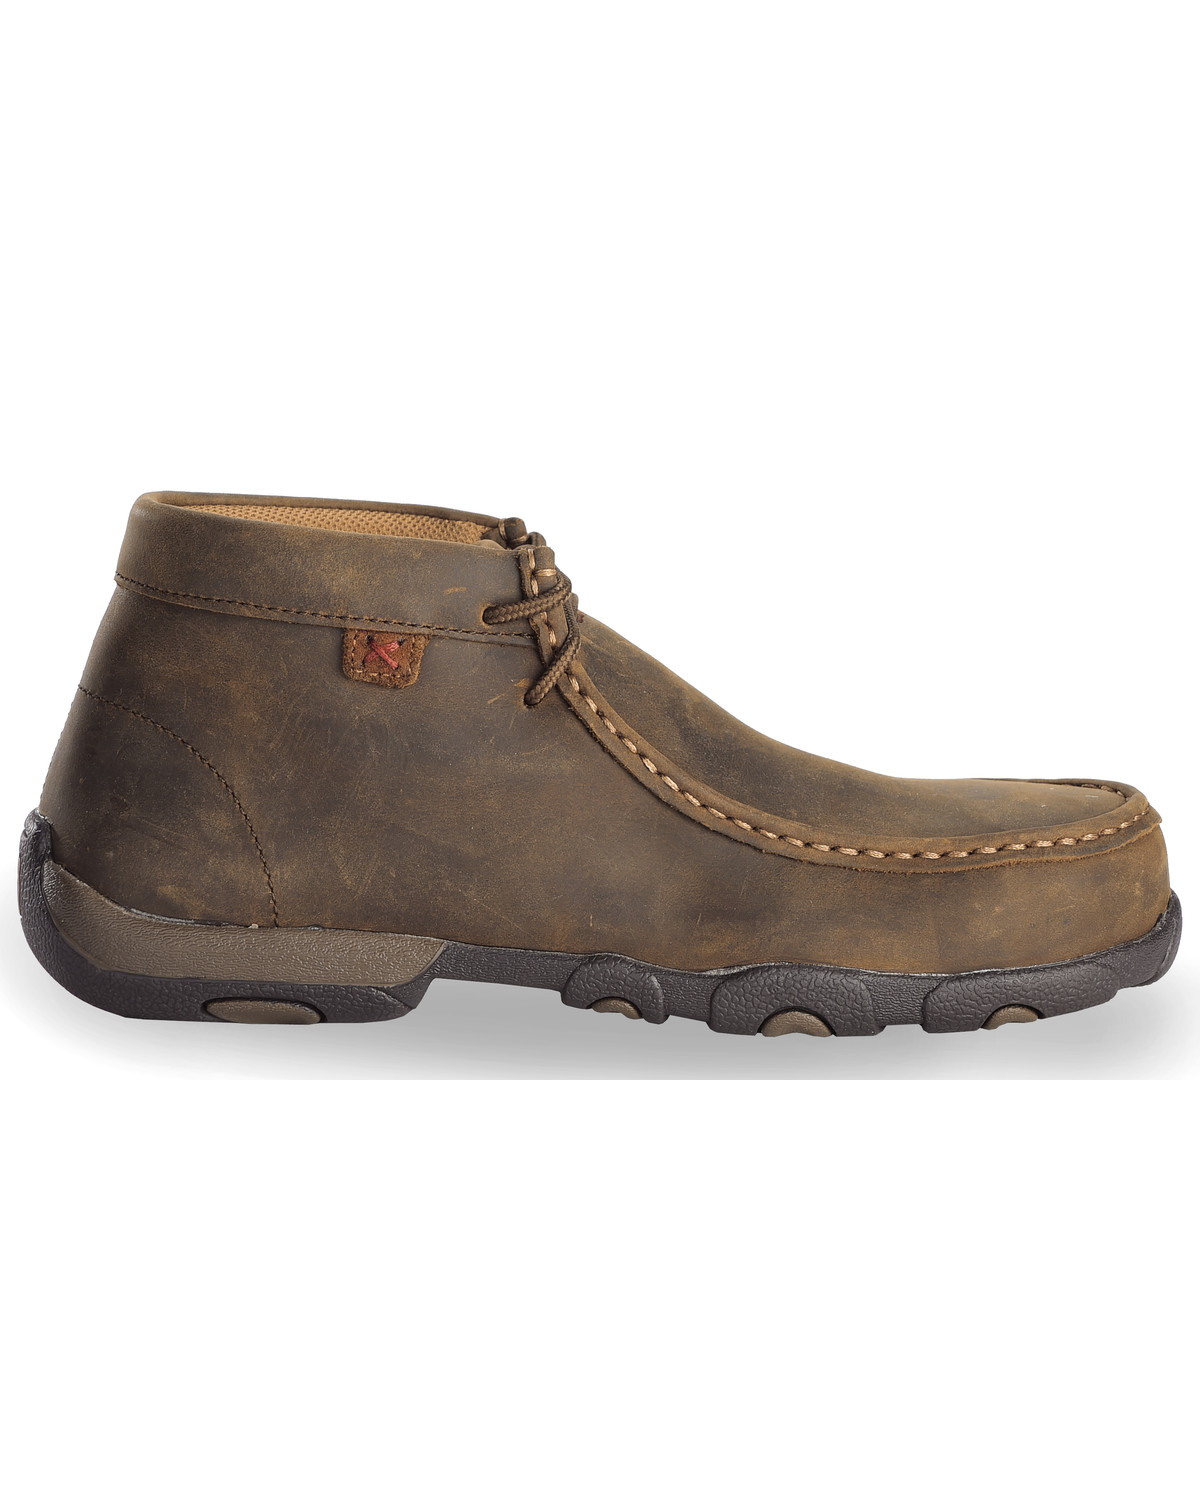 9eb0239a2b5 Twisted X Driving Moc Work Shoes - Steel Toe